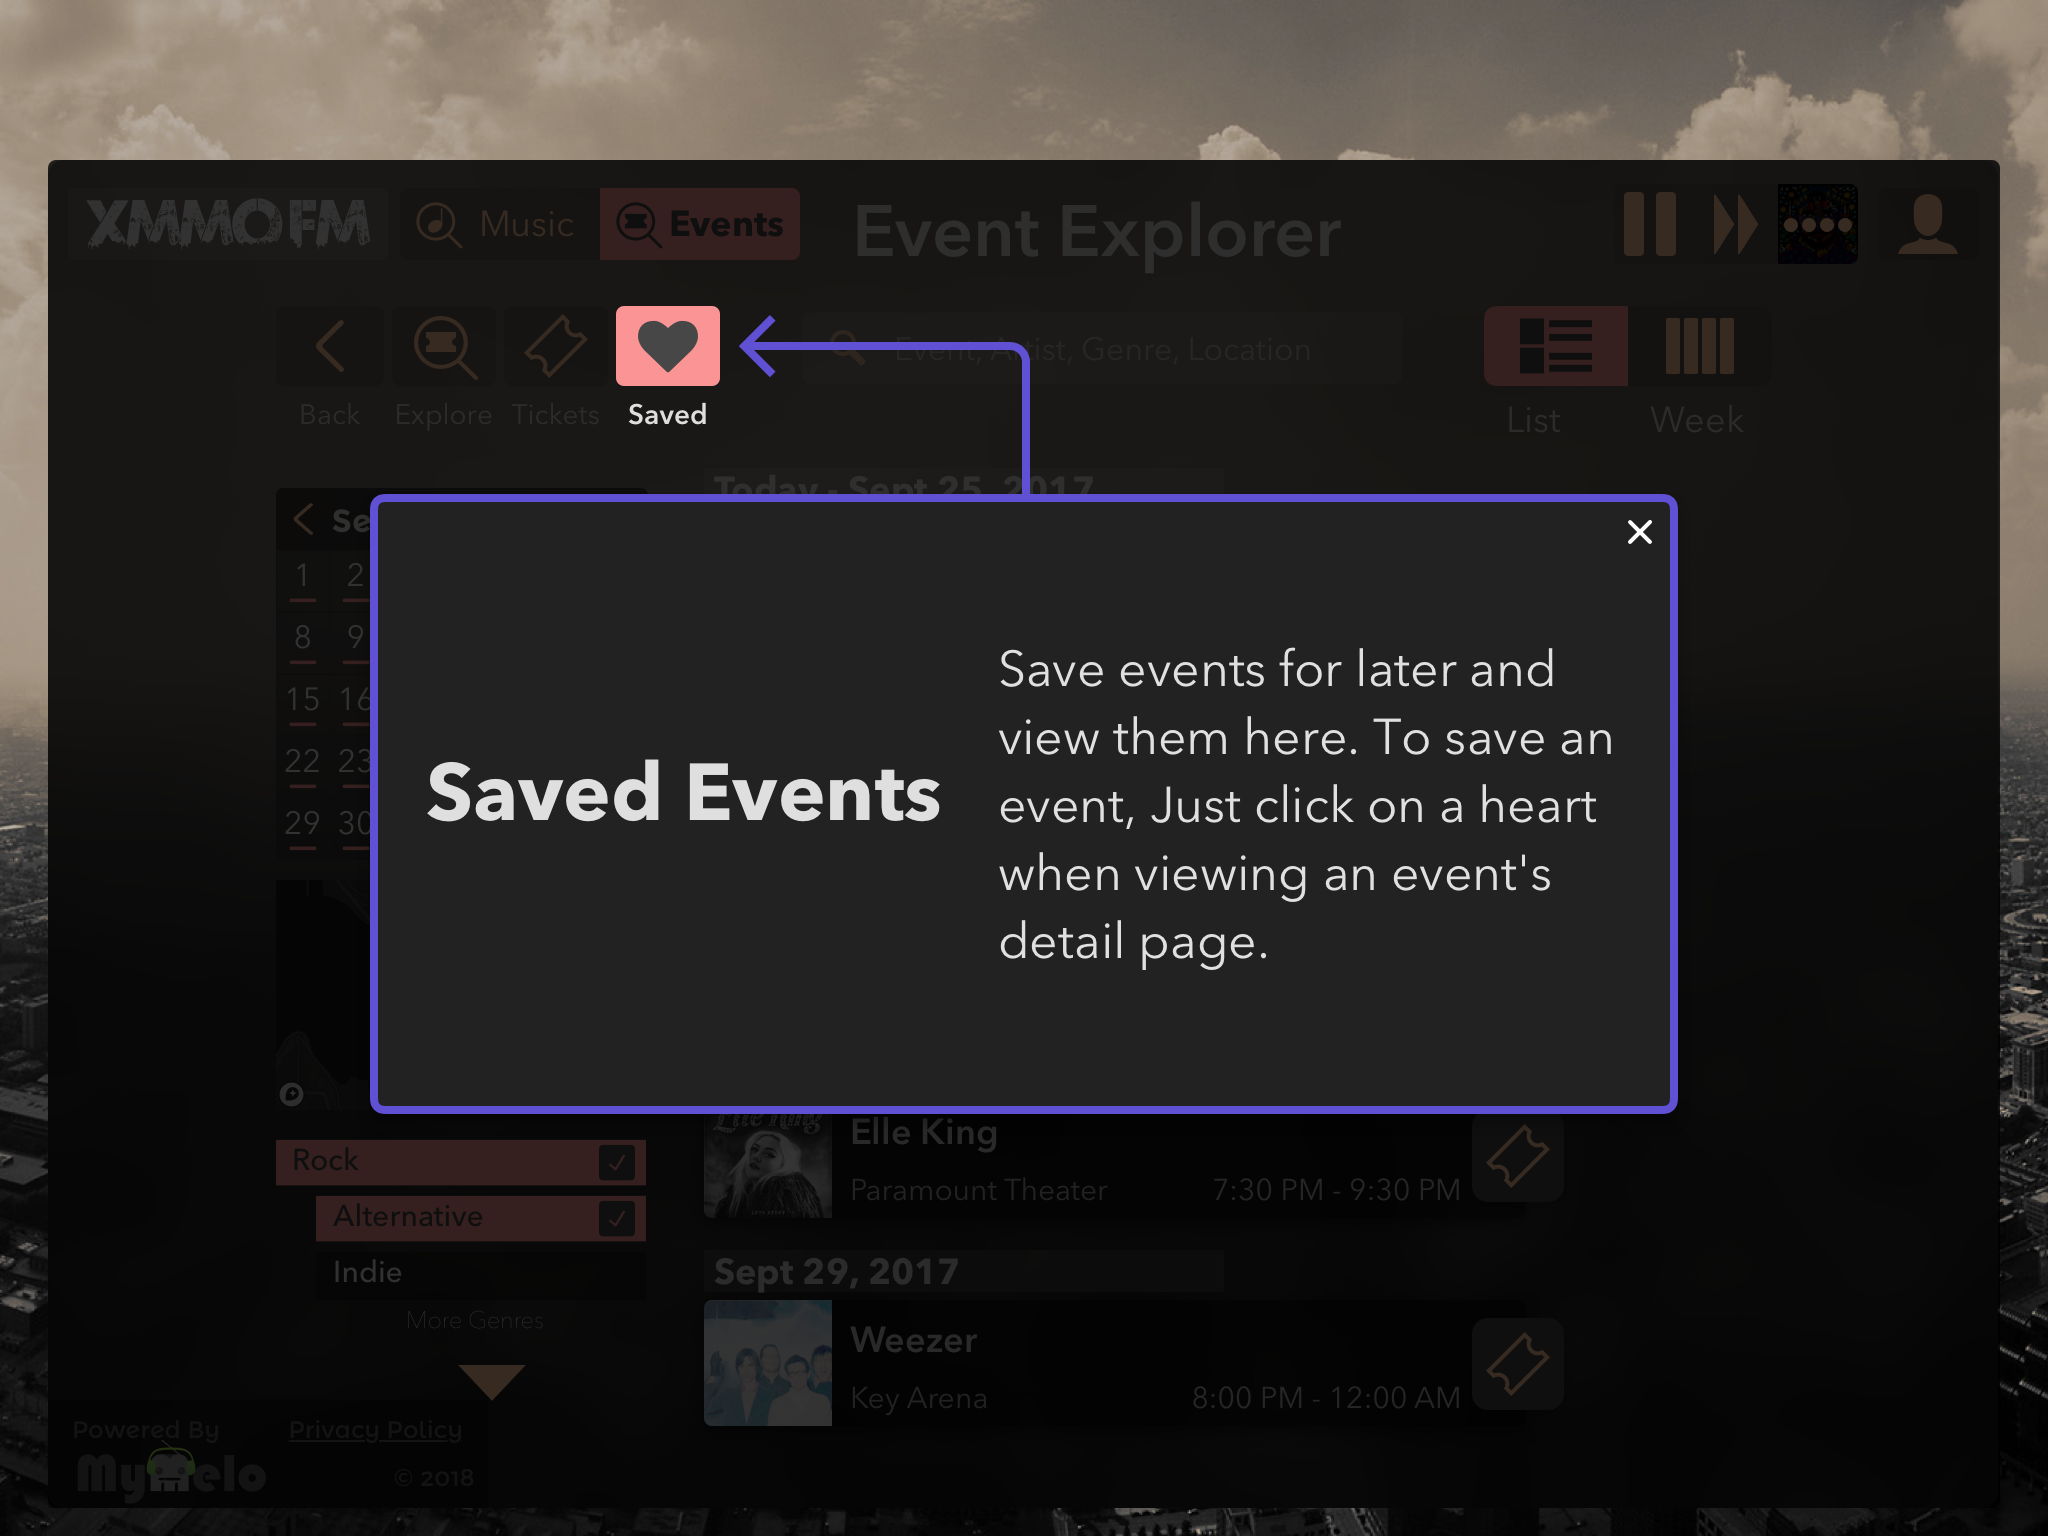 XMMO 3 - Events-Quickstart-22 Saved Events@2x.png